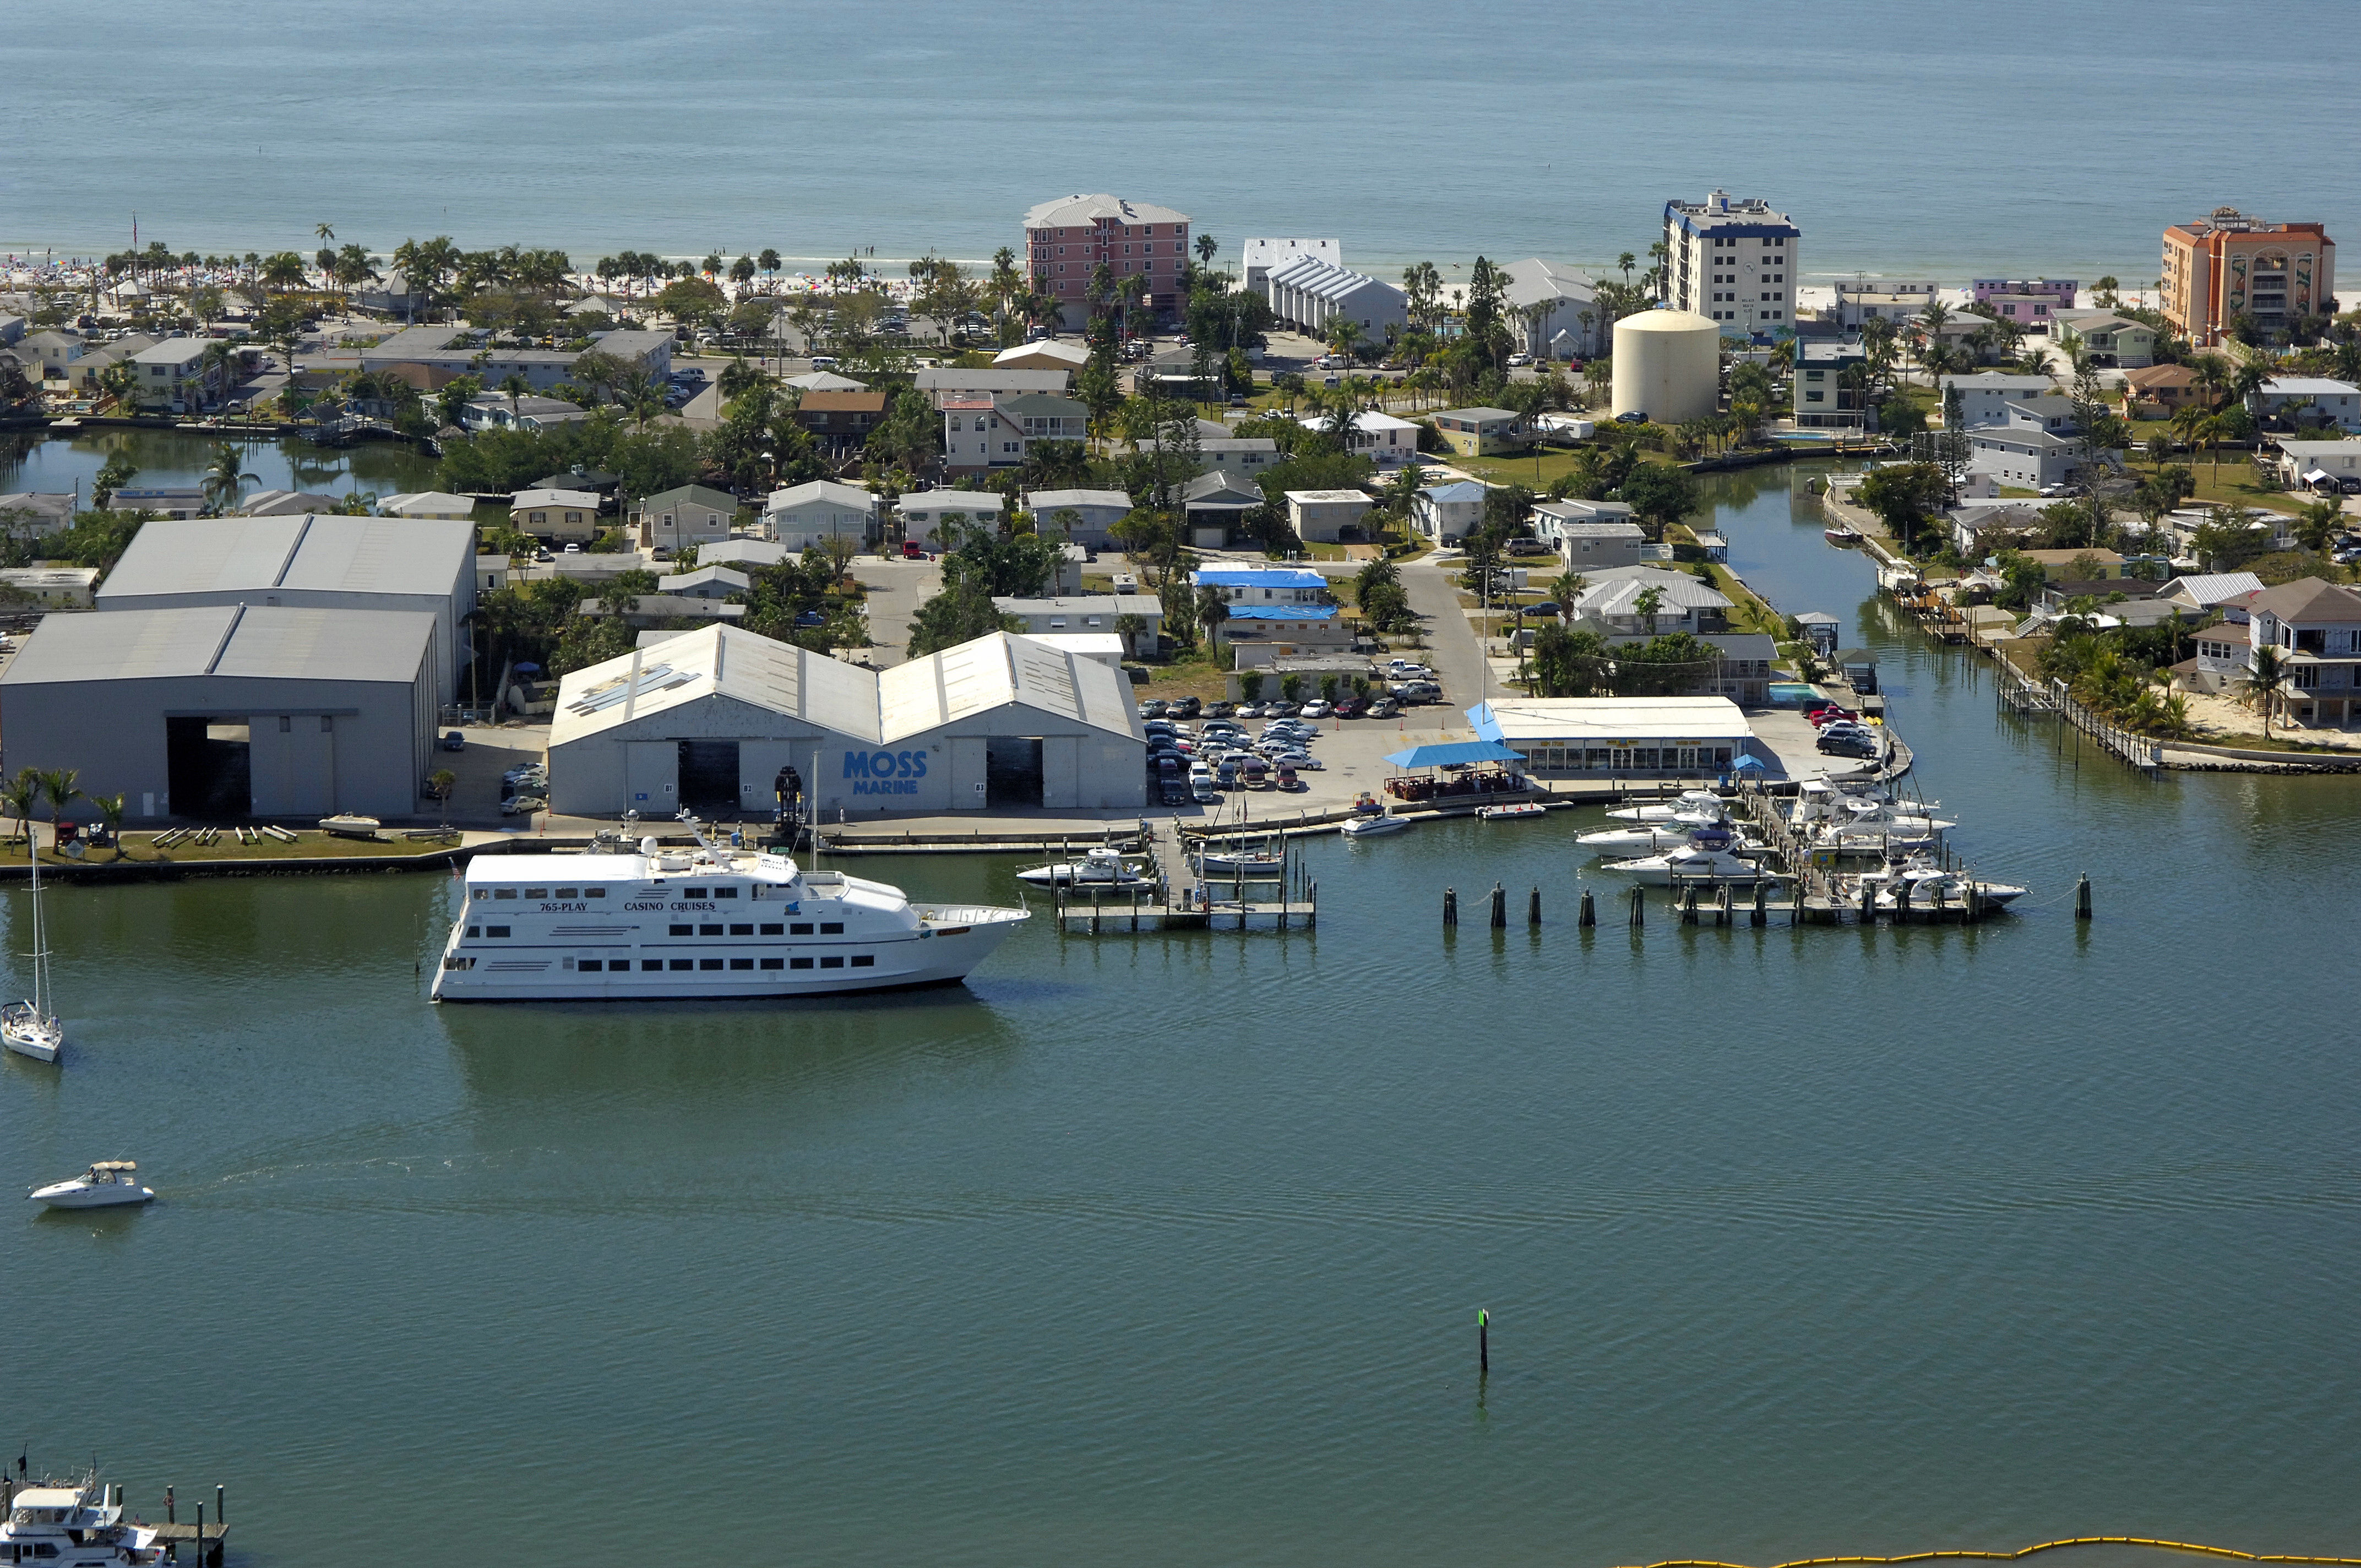 Moss marina in fort myers beach fl united states marina moss marina in fort myers beach fl united states marina reviews phone number marinas geenschuldenfo Gallery